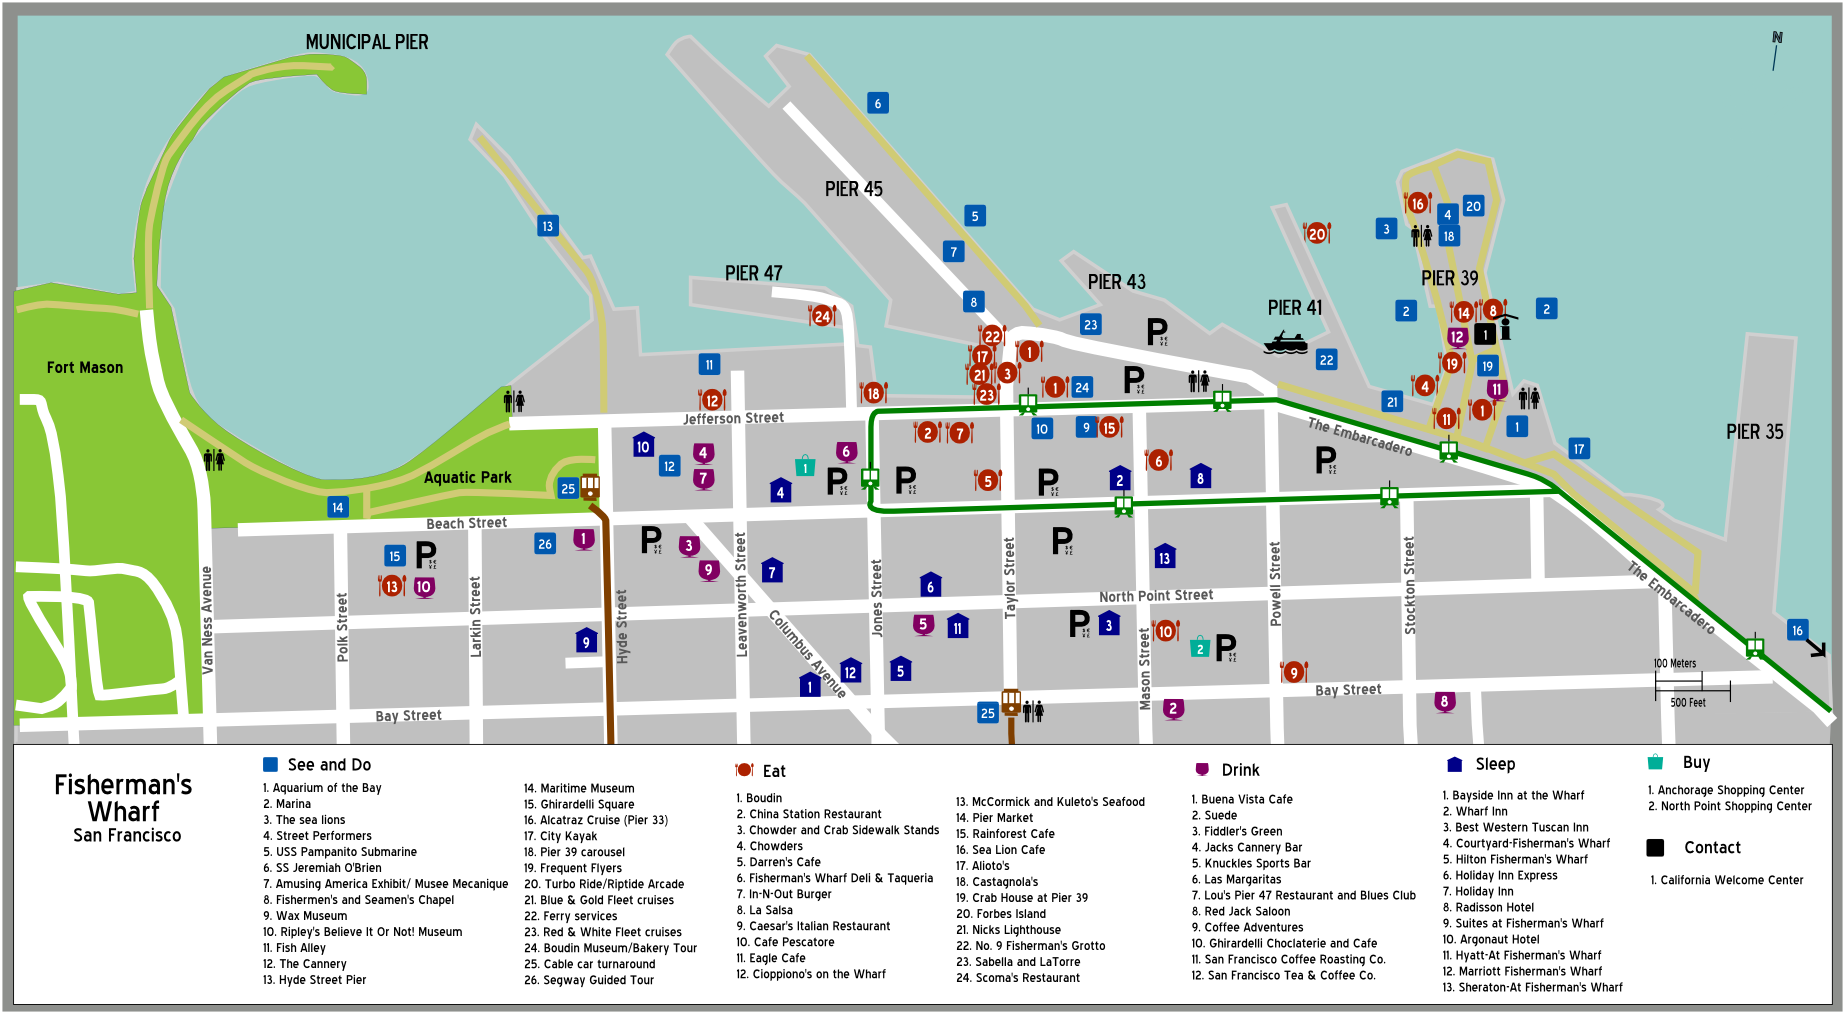 File:Sanfrancisco fishermanswharf map.png - Wikimedia Commons on map of lombard street, map of california, map of stanford shopping center, map of pier 39, map of golden gate bridge, map of 17-mile drive, map of union square, map of leo carrillo, map of hunters point, map of cathedral hill, map of moscone convention center, map of cable car, map of civic center, map of cliff house, map of the east side, map of sea cliff, map of ogden point, map of haight ashbury district, map of union city, map of south street seaport,